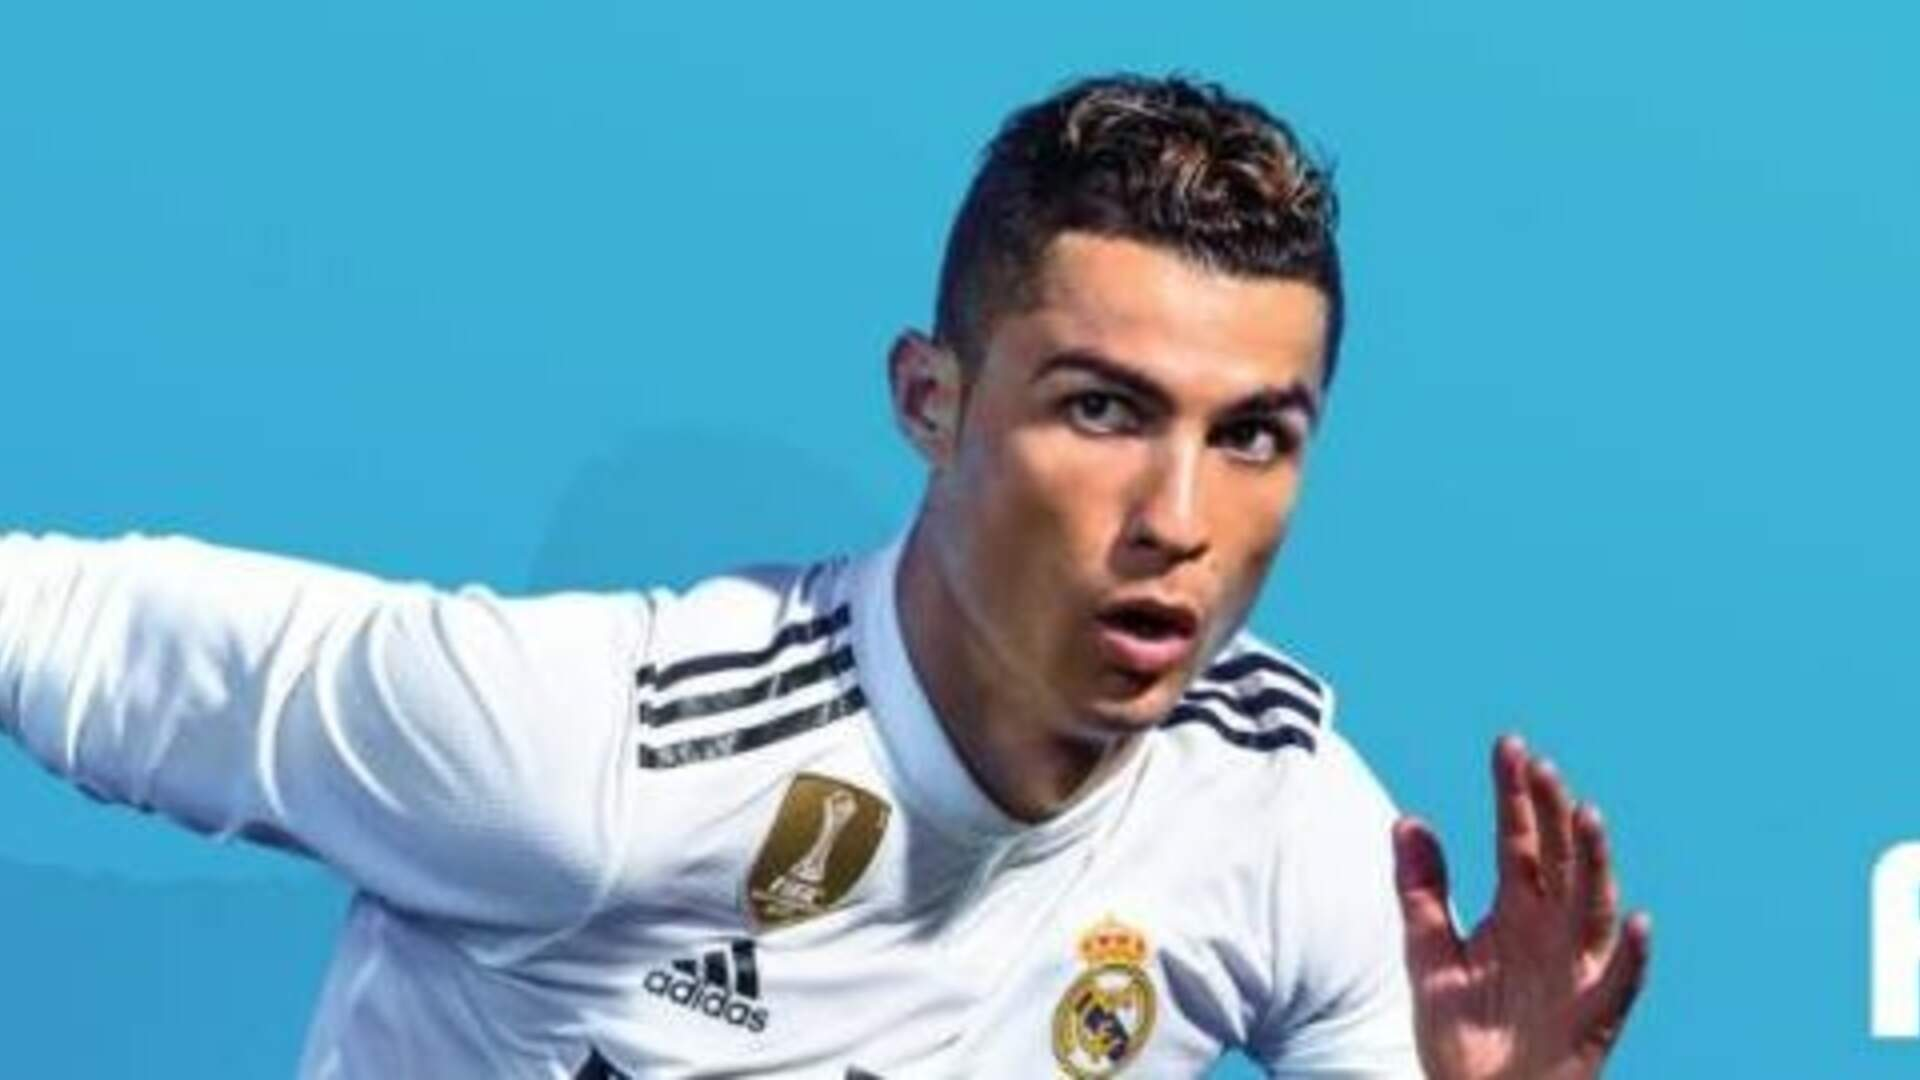 FIFA 19 is Getting UEFA Champions League - Game Releases on September 28